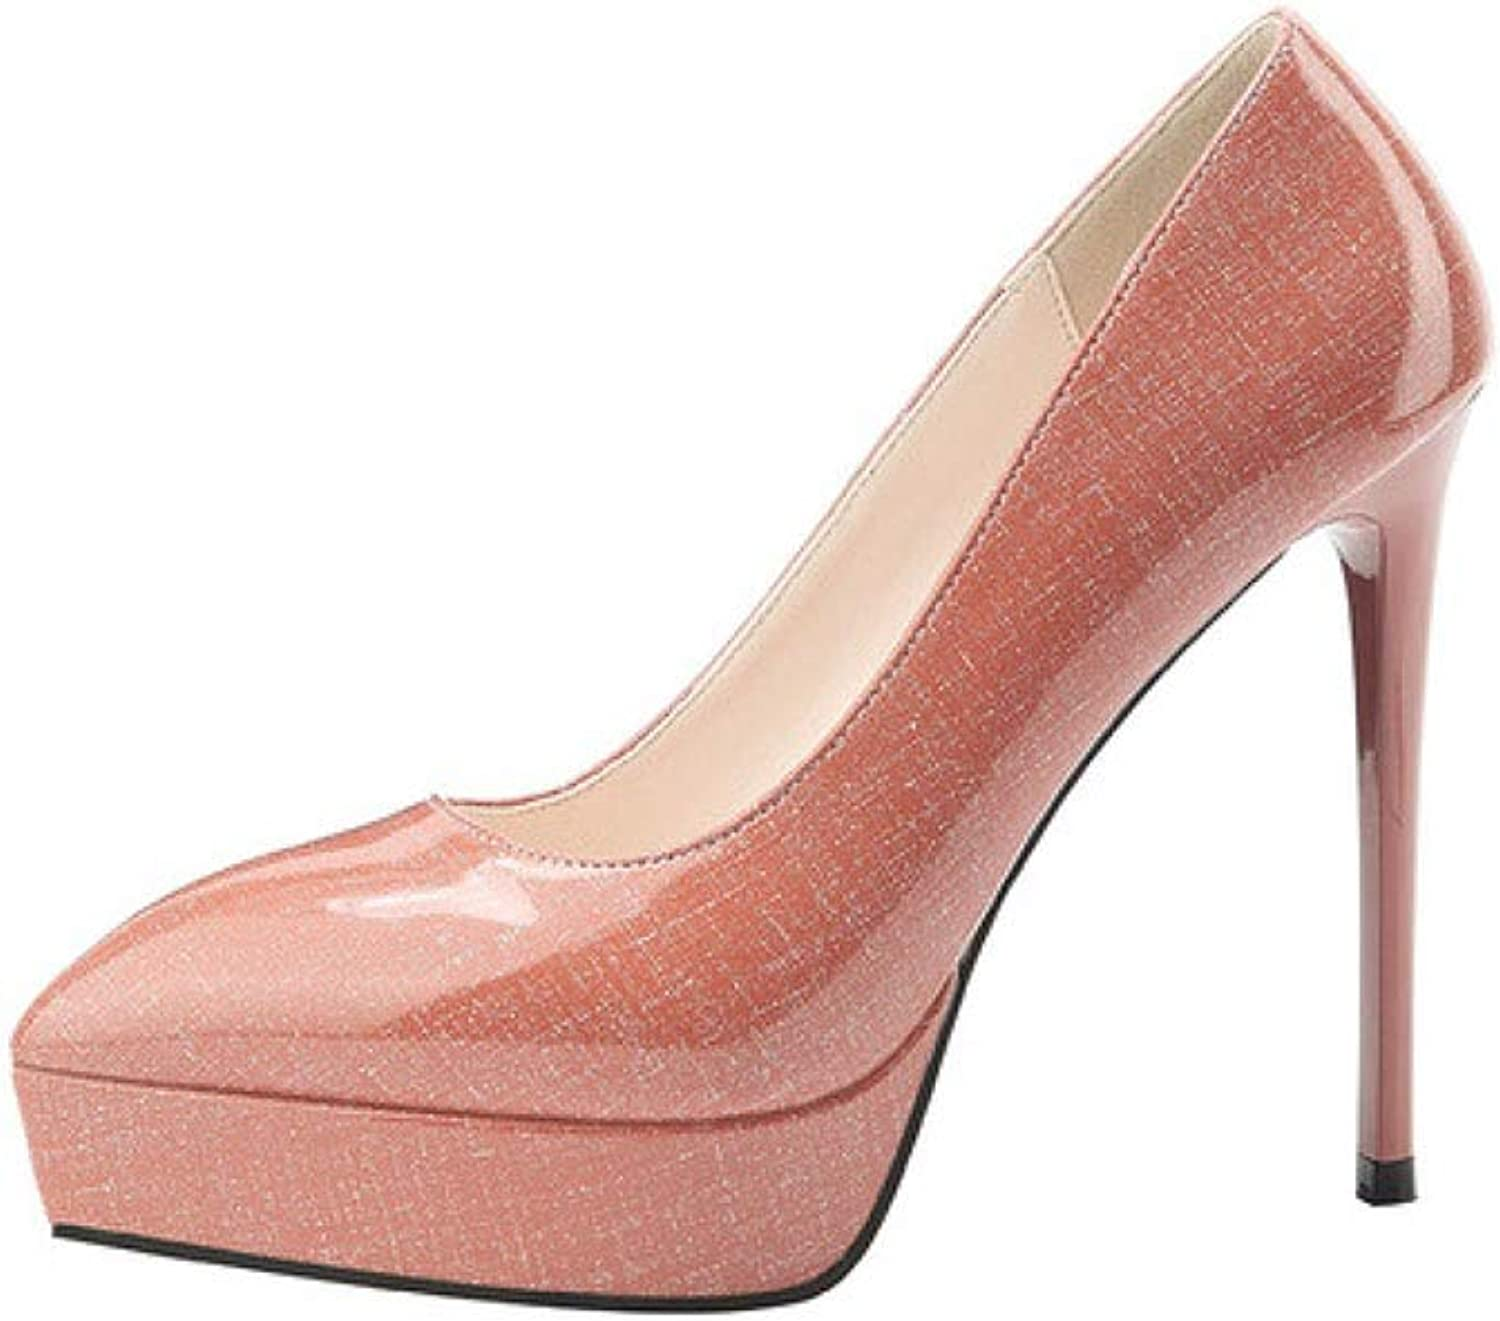 SXHDMY High-Heeled Women's Rubber Fashion Beautiful Sexy Stiletto Work shoes Spring and Summer 12.5CM 4 colors high Heels (color   Z-1, Size   EU38 UK5.5 CN38)